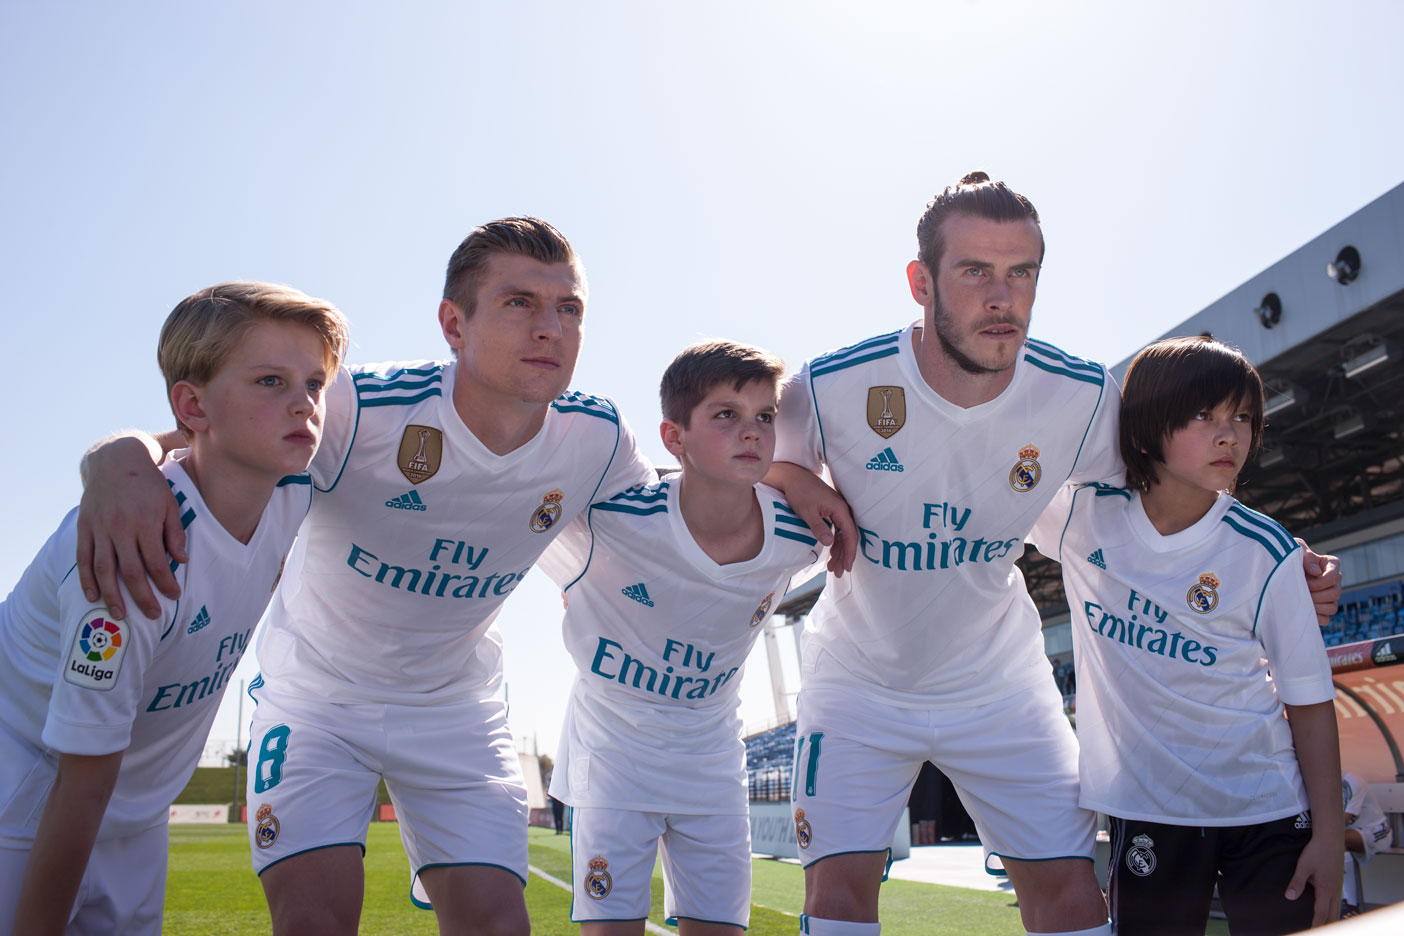 Play at Real Madrid City!  RMFC Announces All Star Program - Register Now!